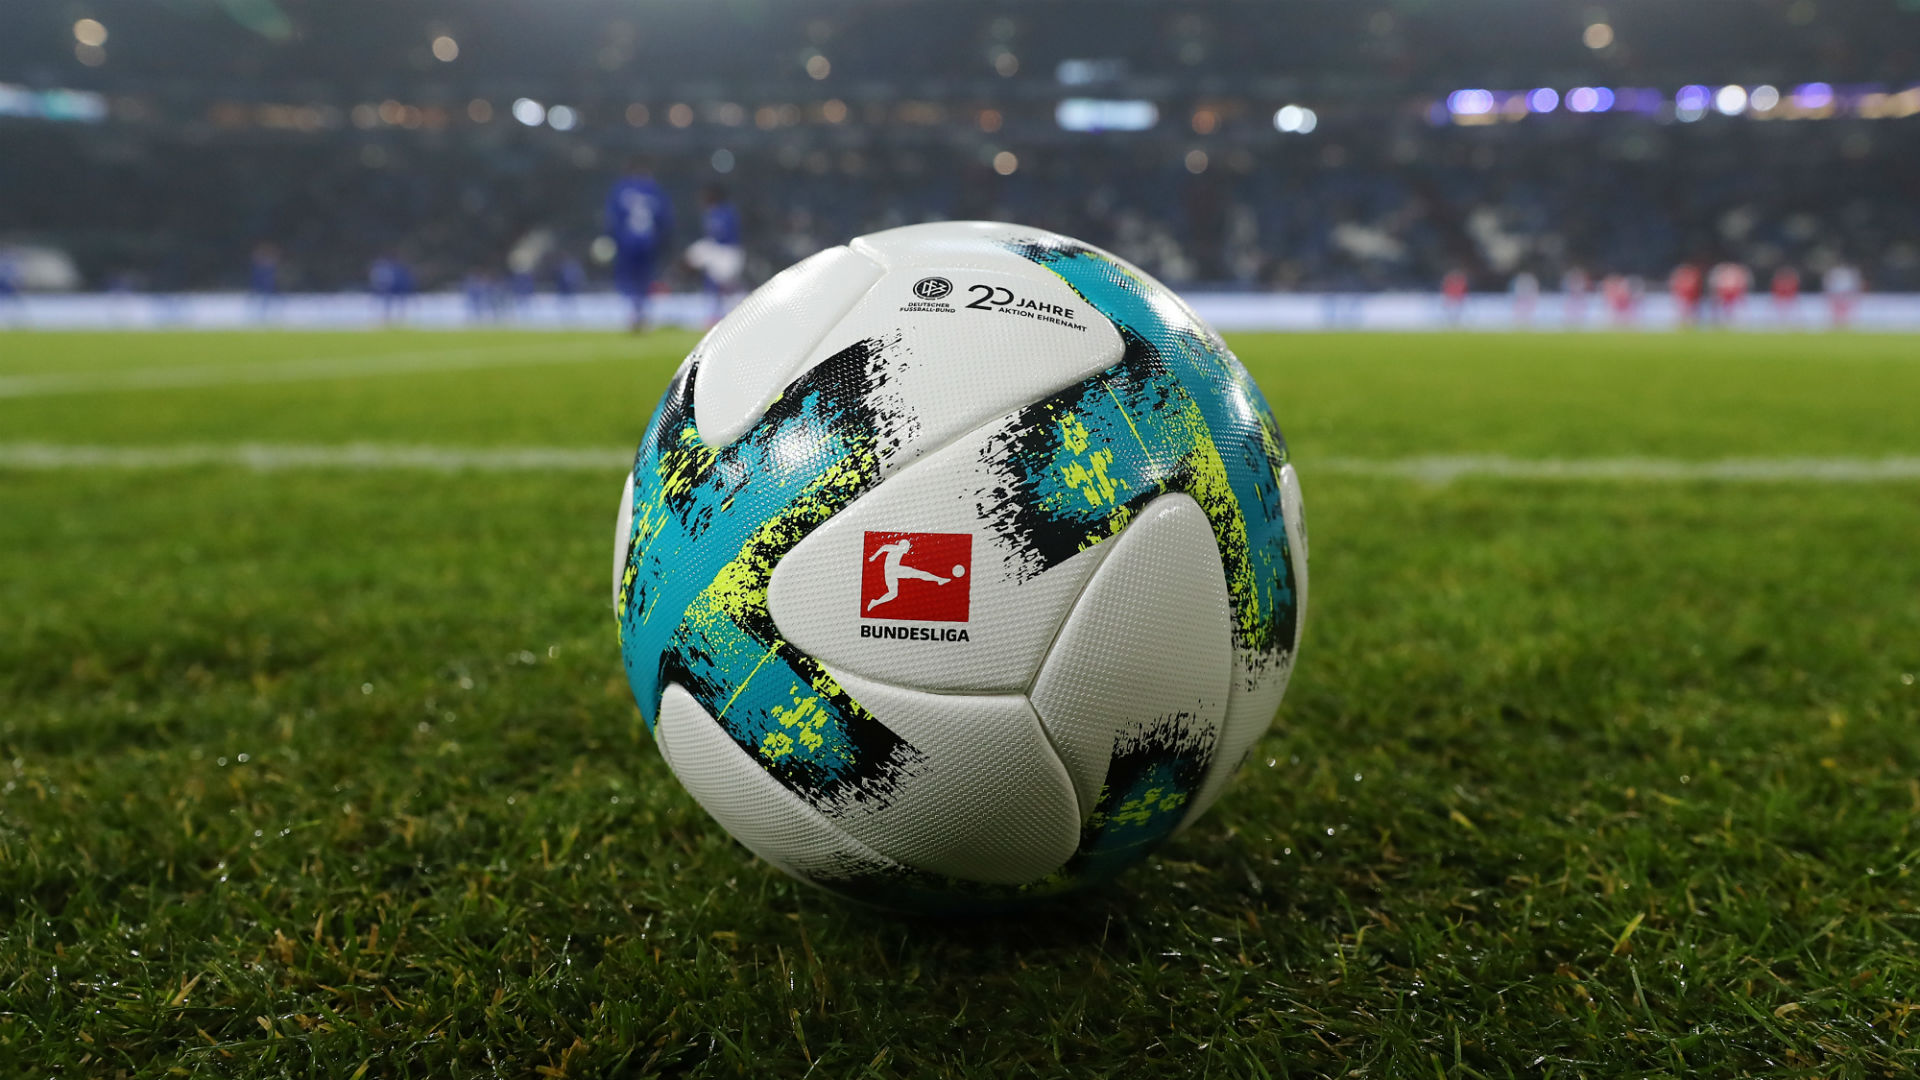 How to watch Bundesliga in the USA: Full TV schedule for 2020 season on Fox Sports channels 1